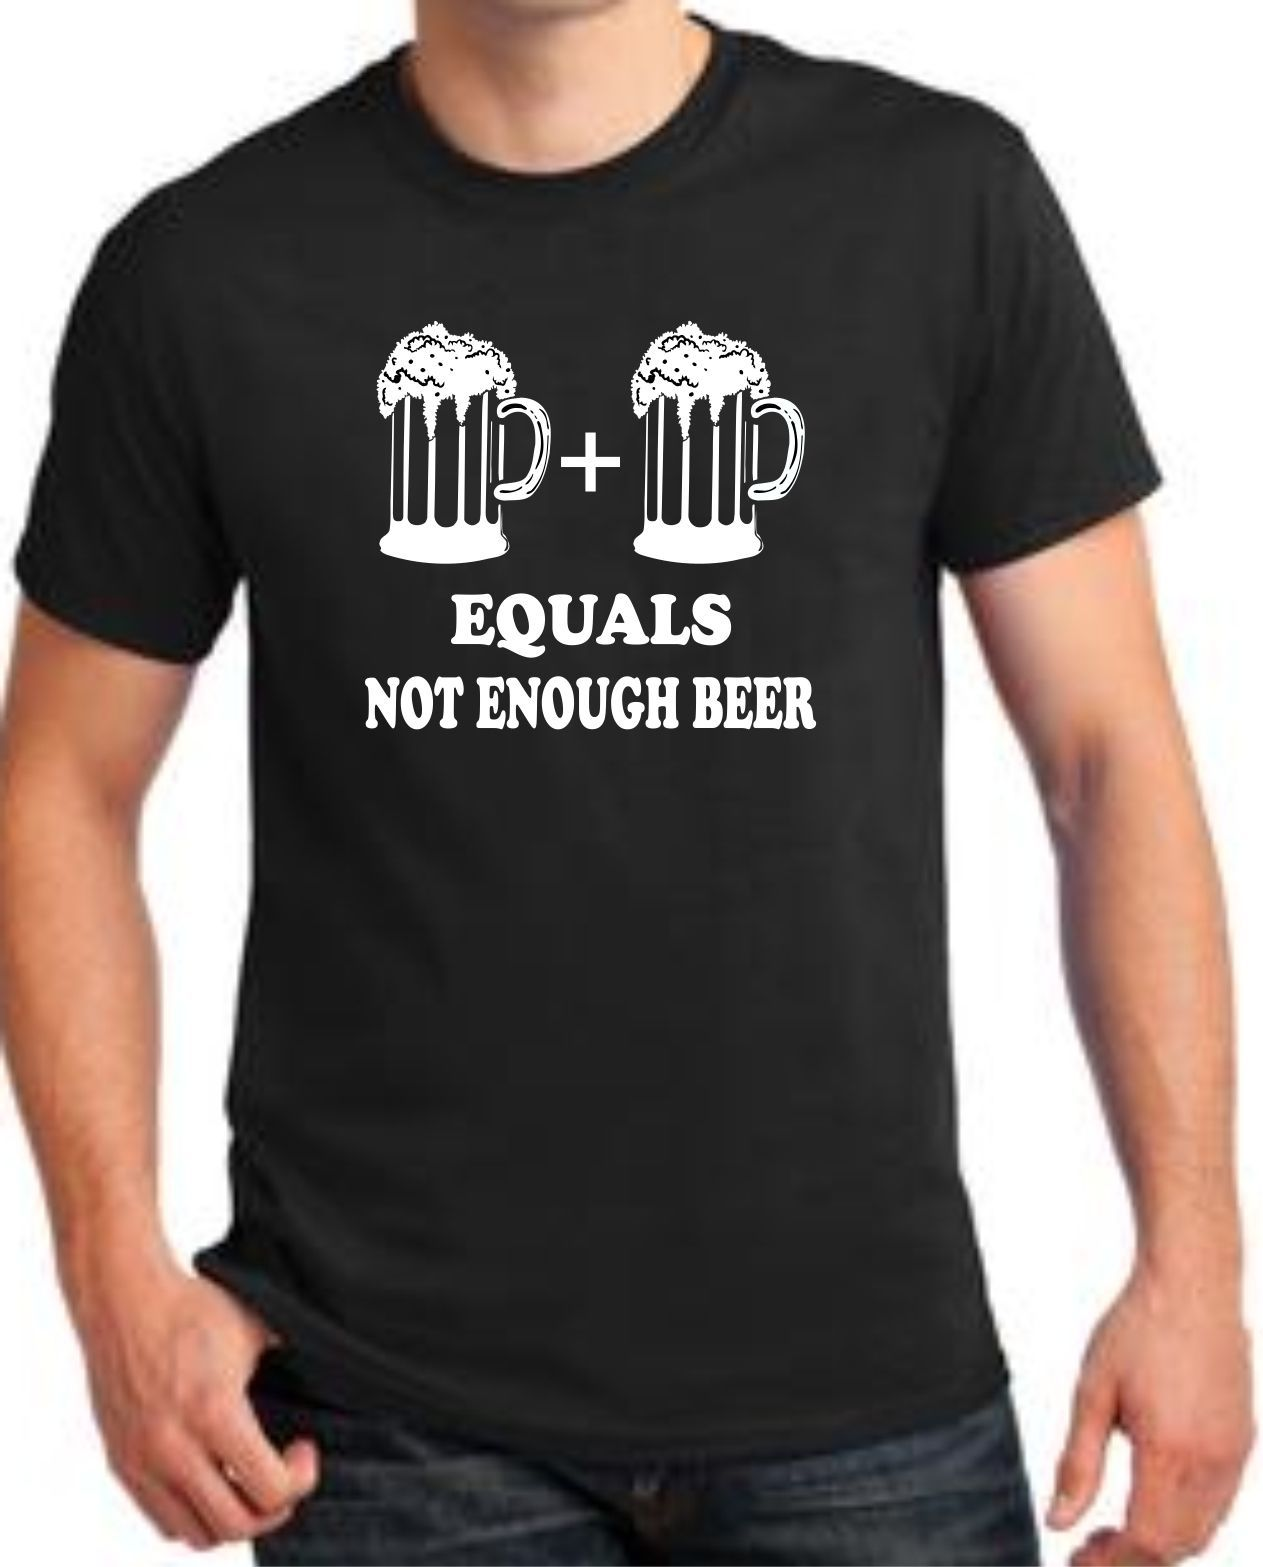 Best T Shirts Men'S Short Graphic Crew Neck Not Enough Beer . Beer Drinking  T Shirts